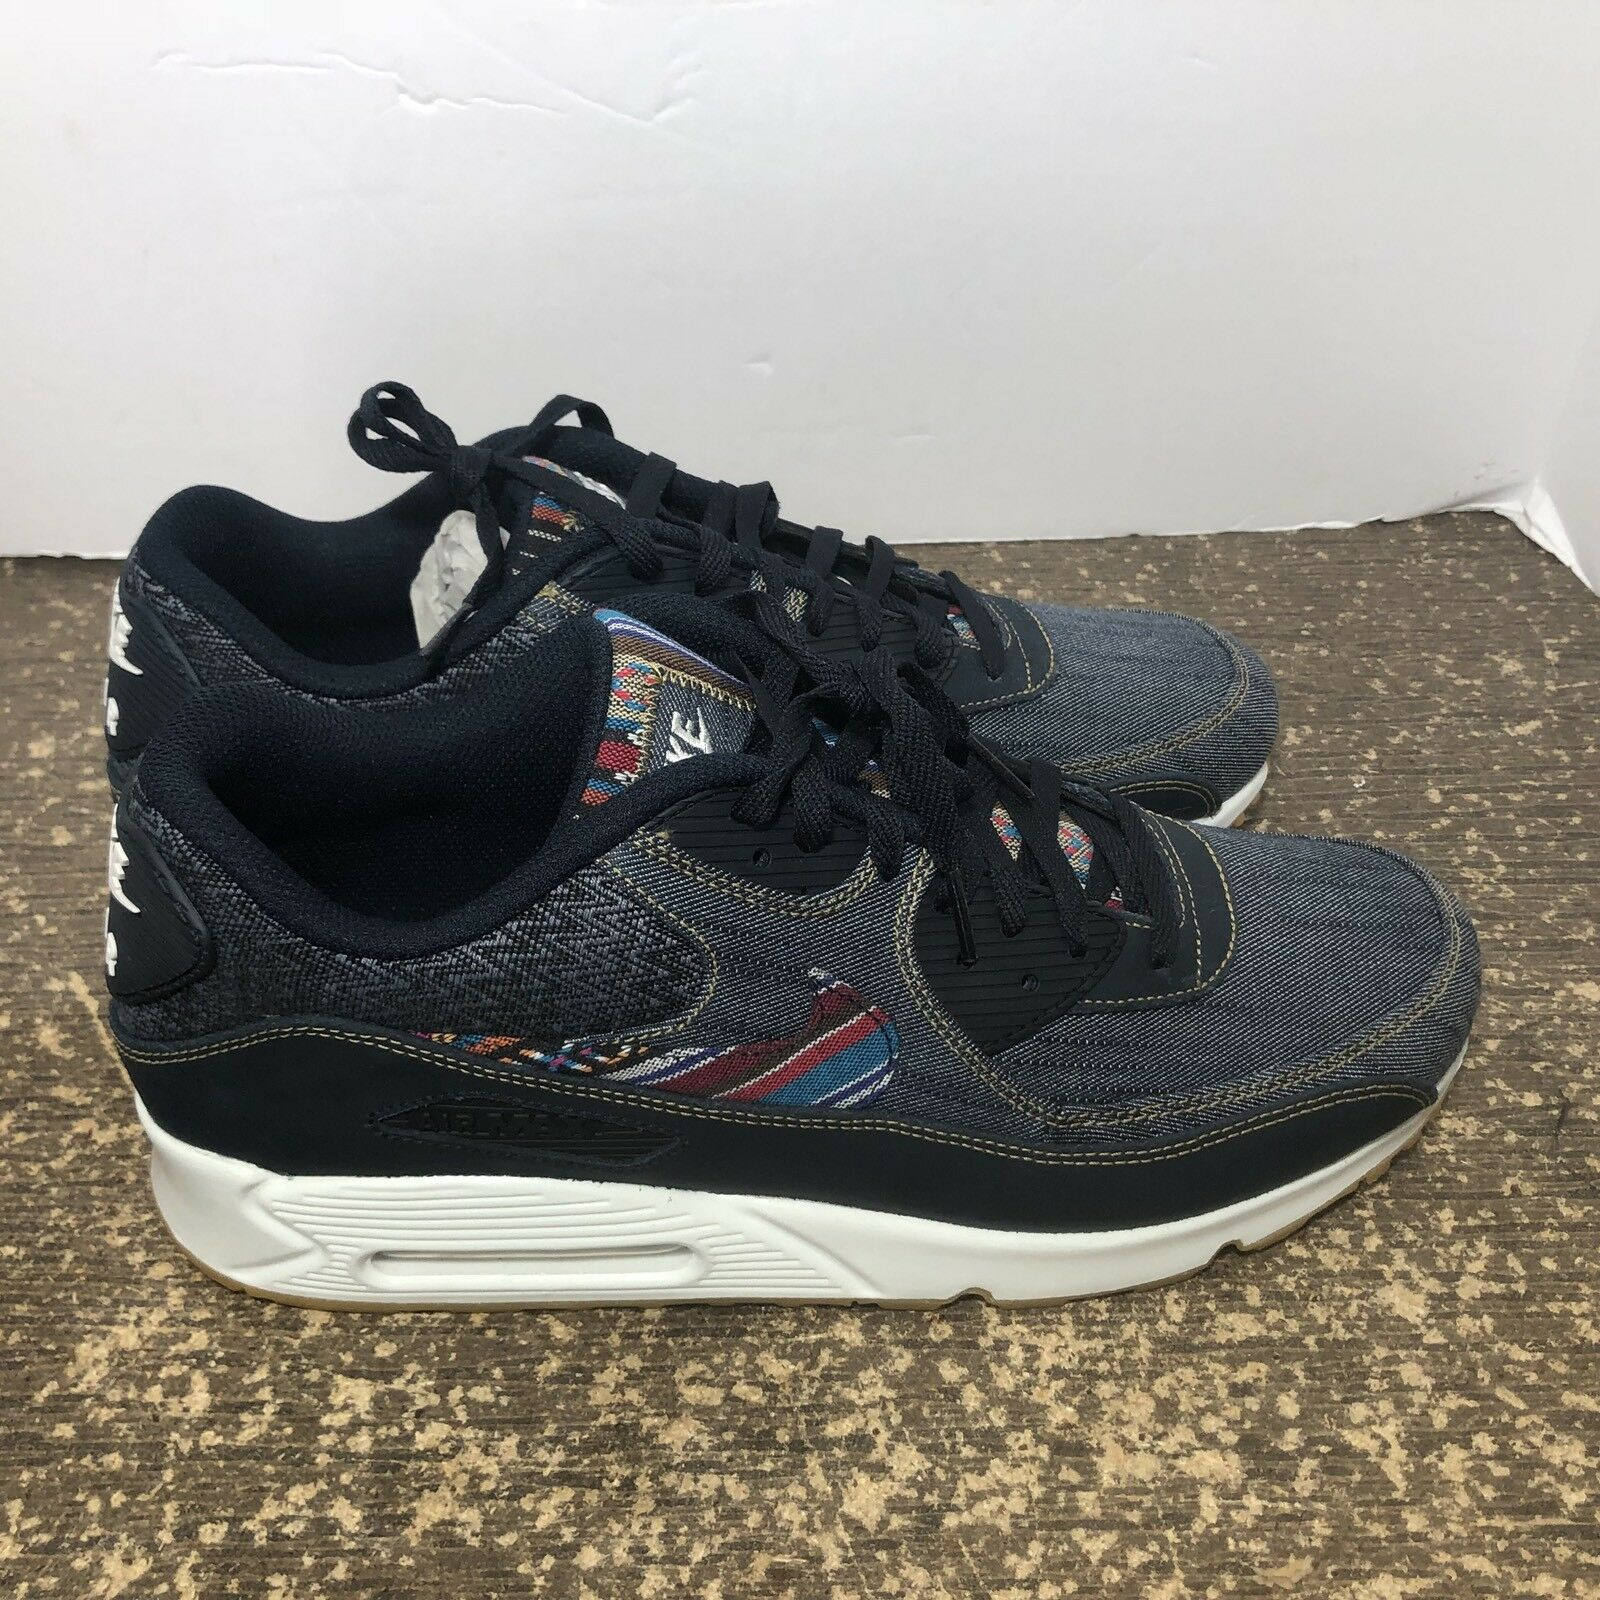 the best attitude 78821 eee6f nike air max 90 prime 700155 afro punk gum fond obsidienne noir obsidienne  fond taille 13